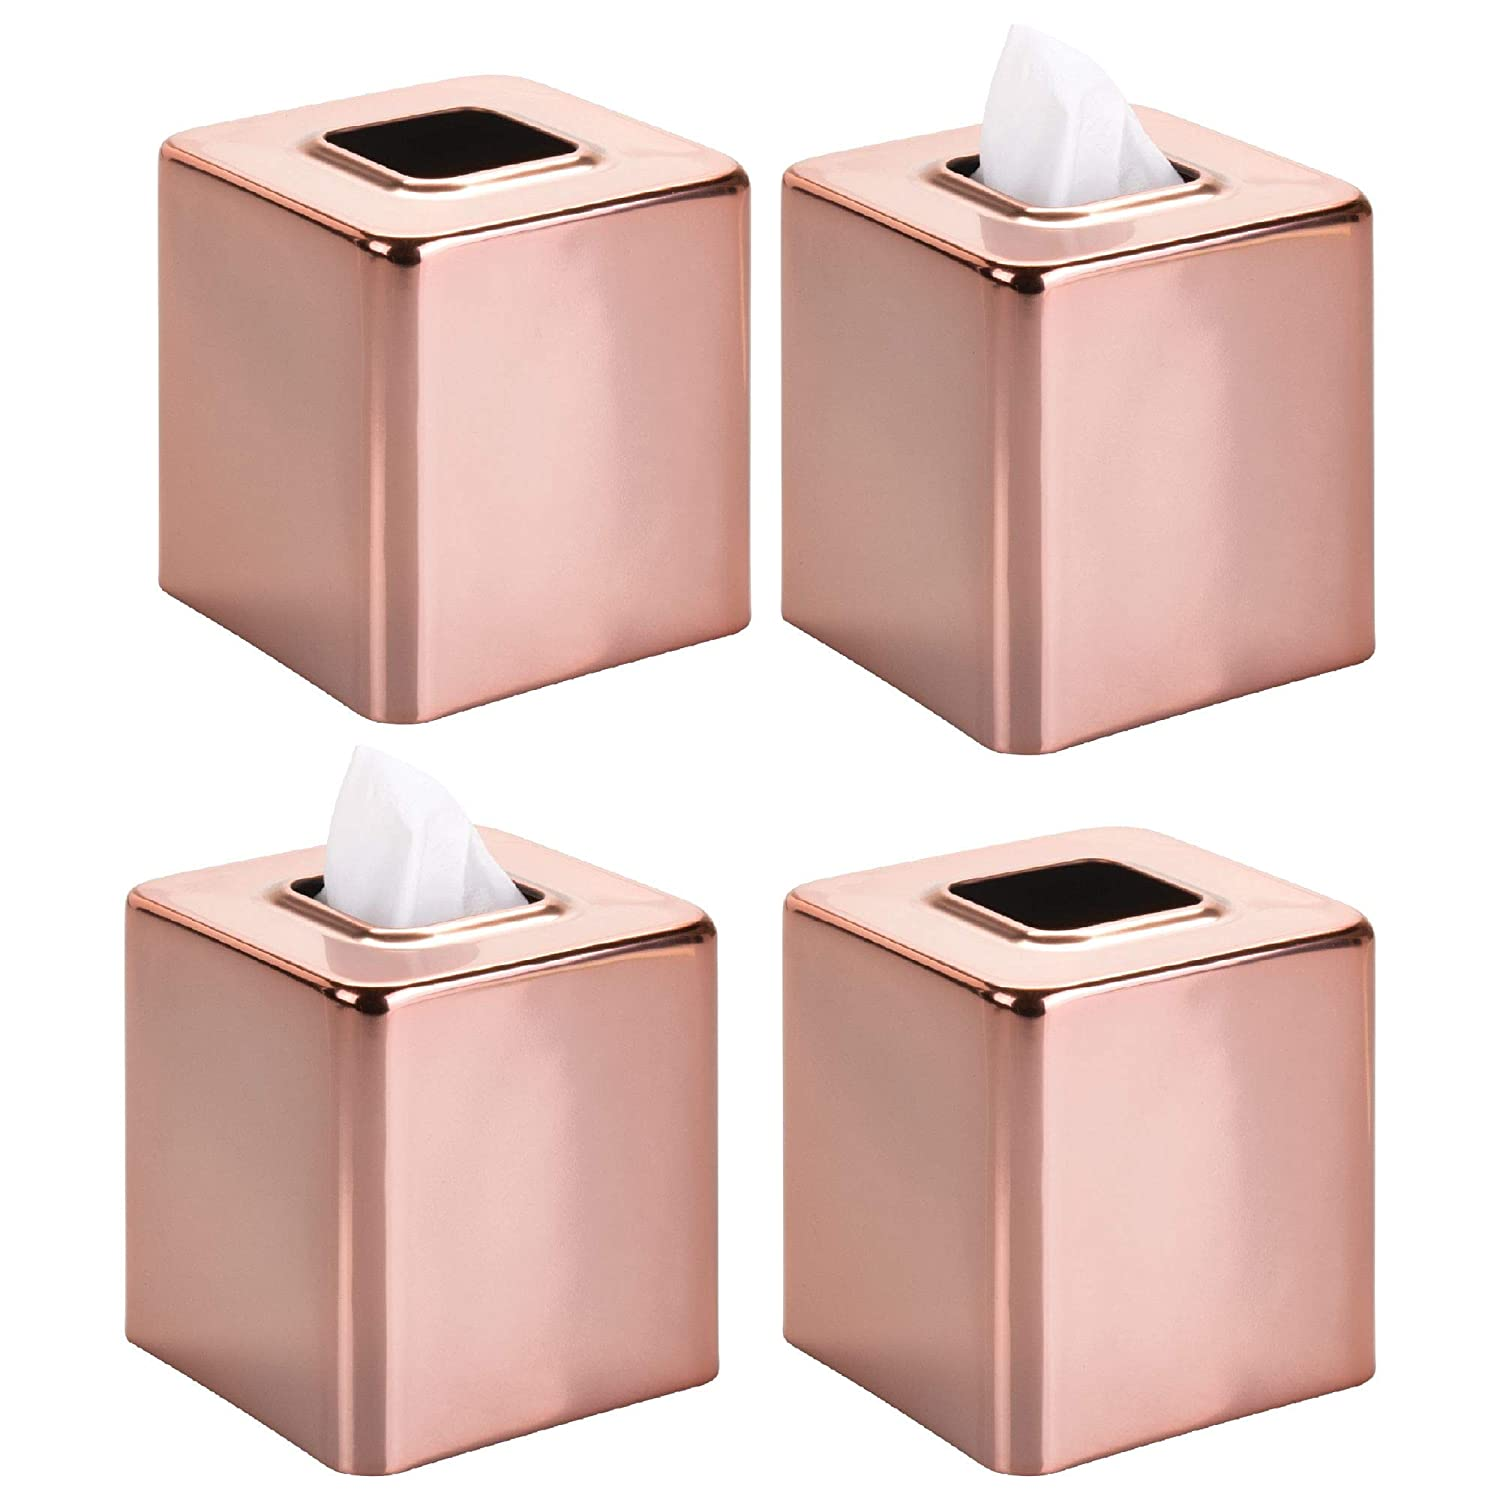 Night Stands Chrome MetroDecor Bedroom Dressers Desks and Tables 4 Pack mDesign Modern Square Metal Paper Facial Tissue Box Cover Holder for Bathroom Vanity Countertops